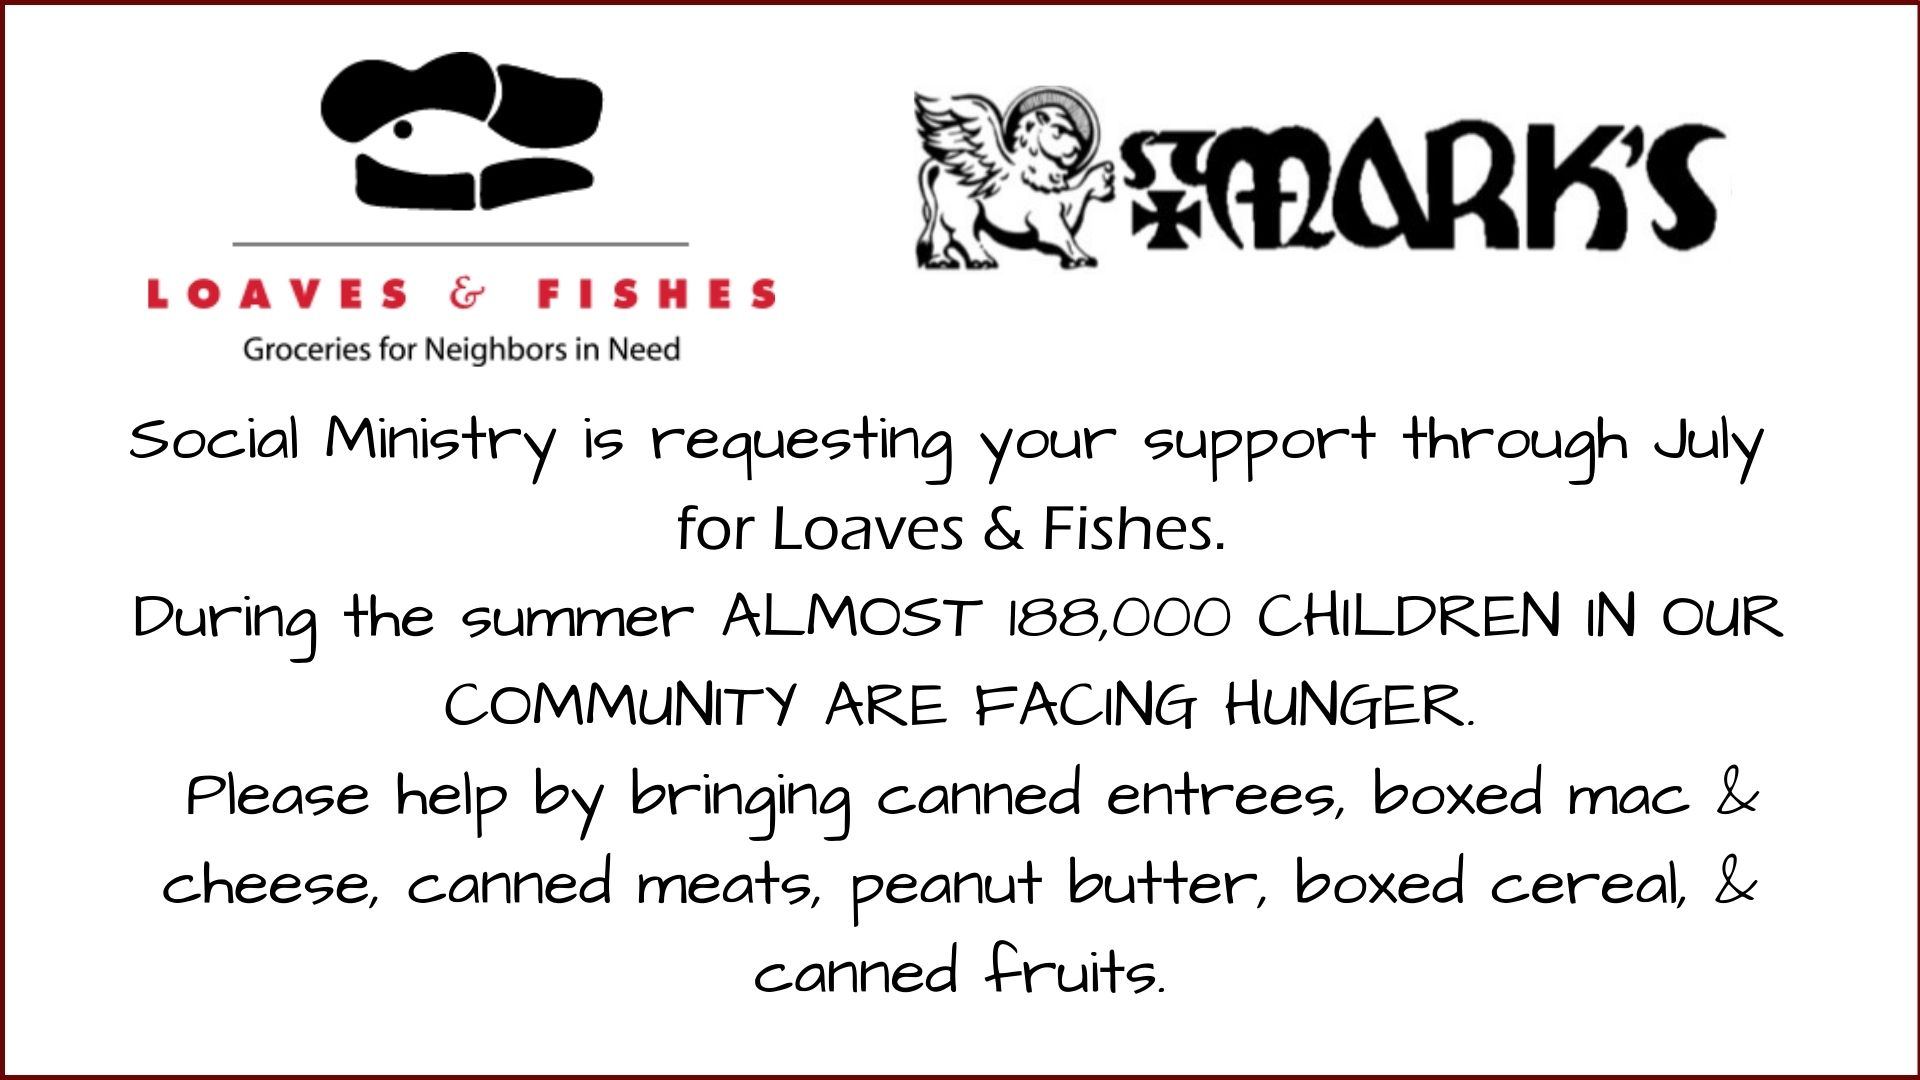 Social Ministry for Loaves & Fishes